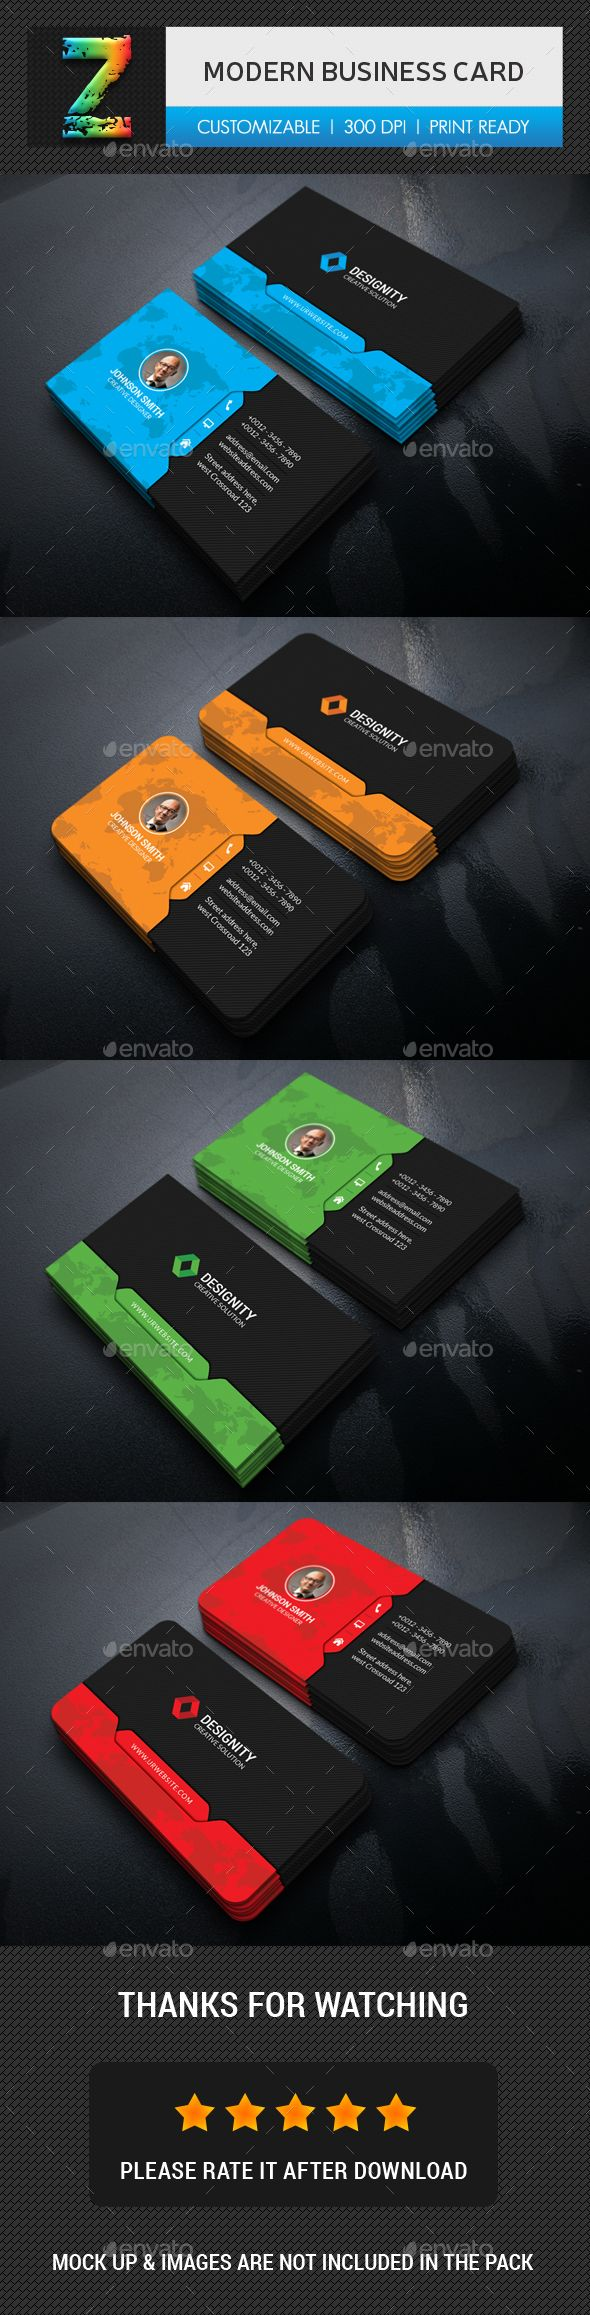 Modern Business Card - Business Cards Print Templates | Design ...